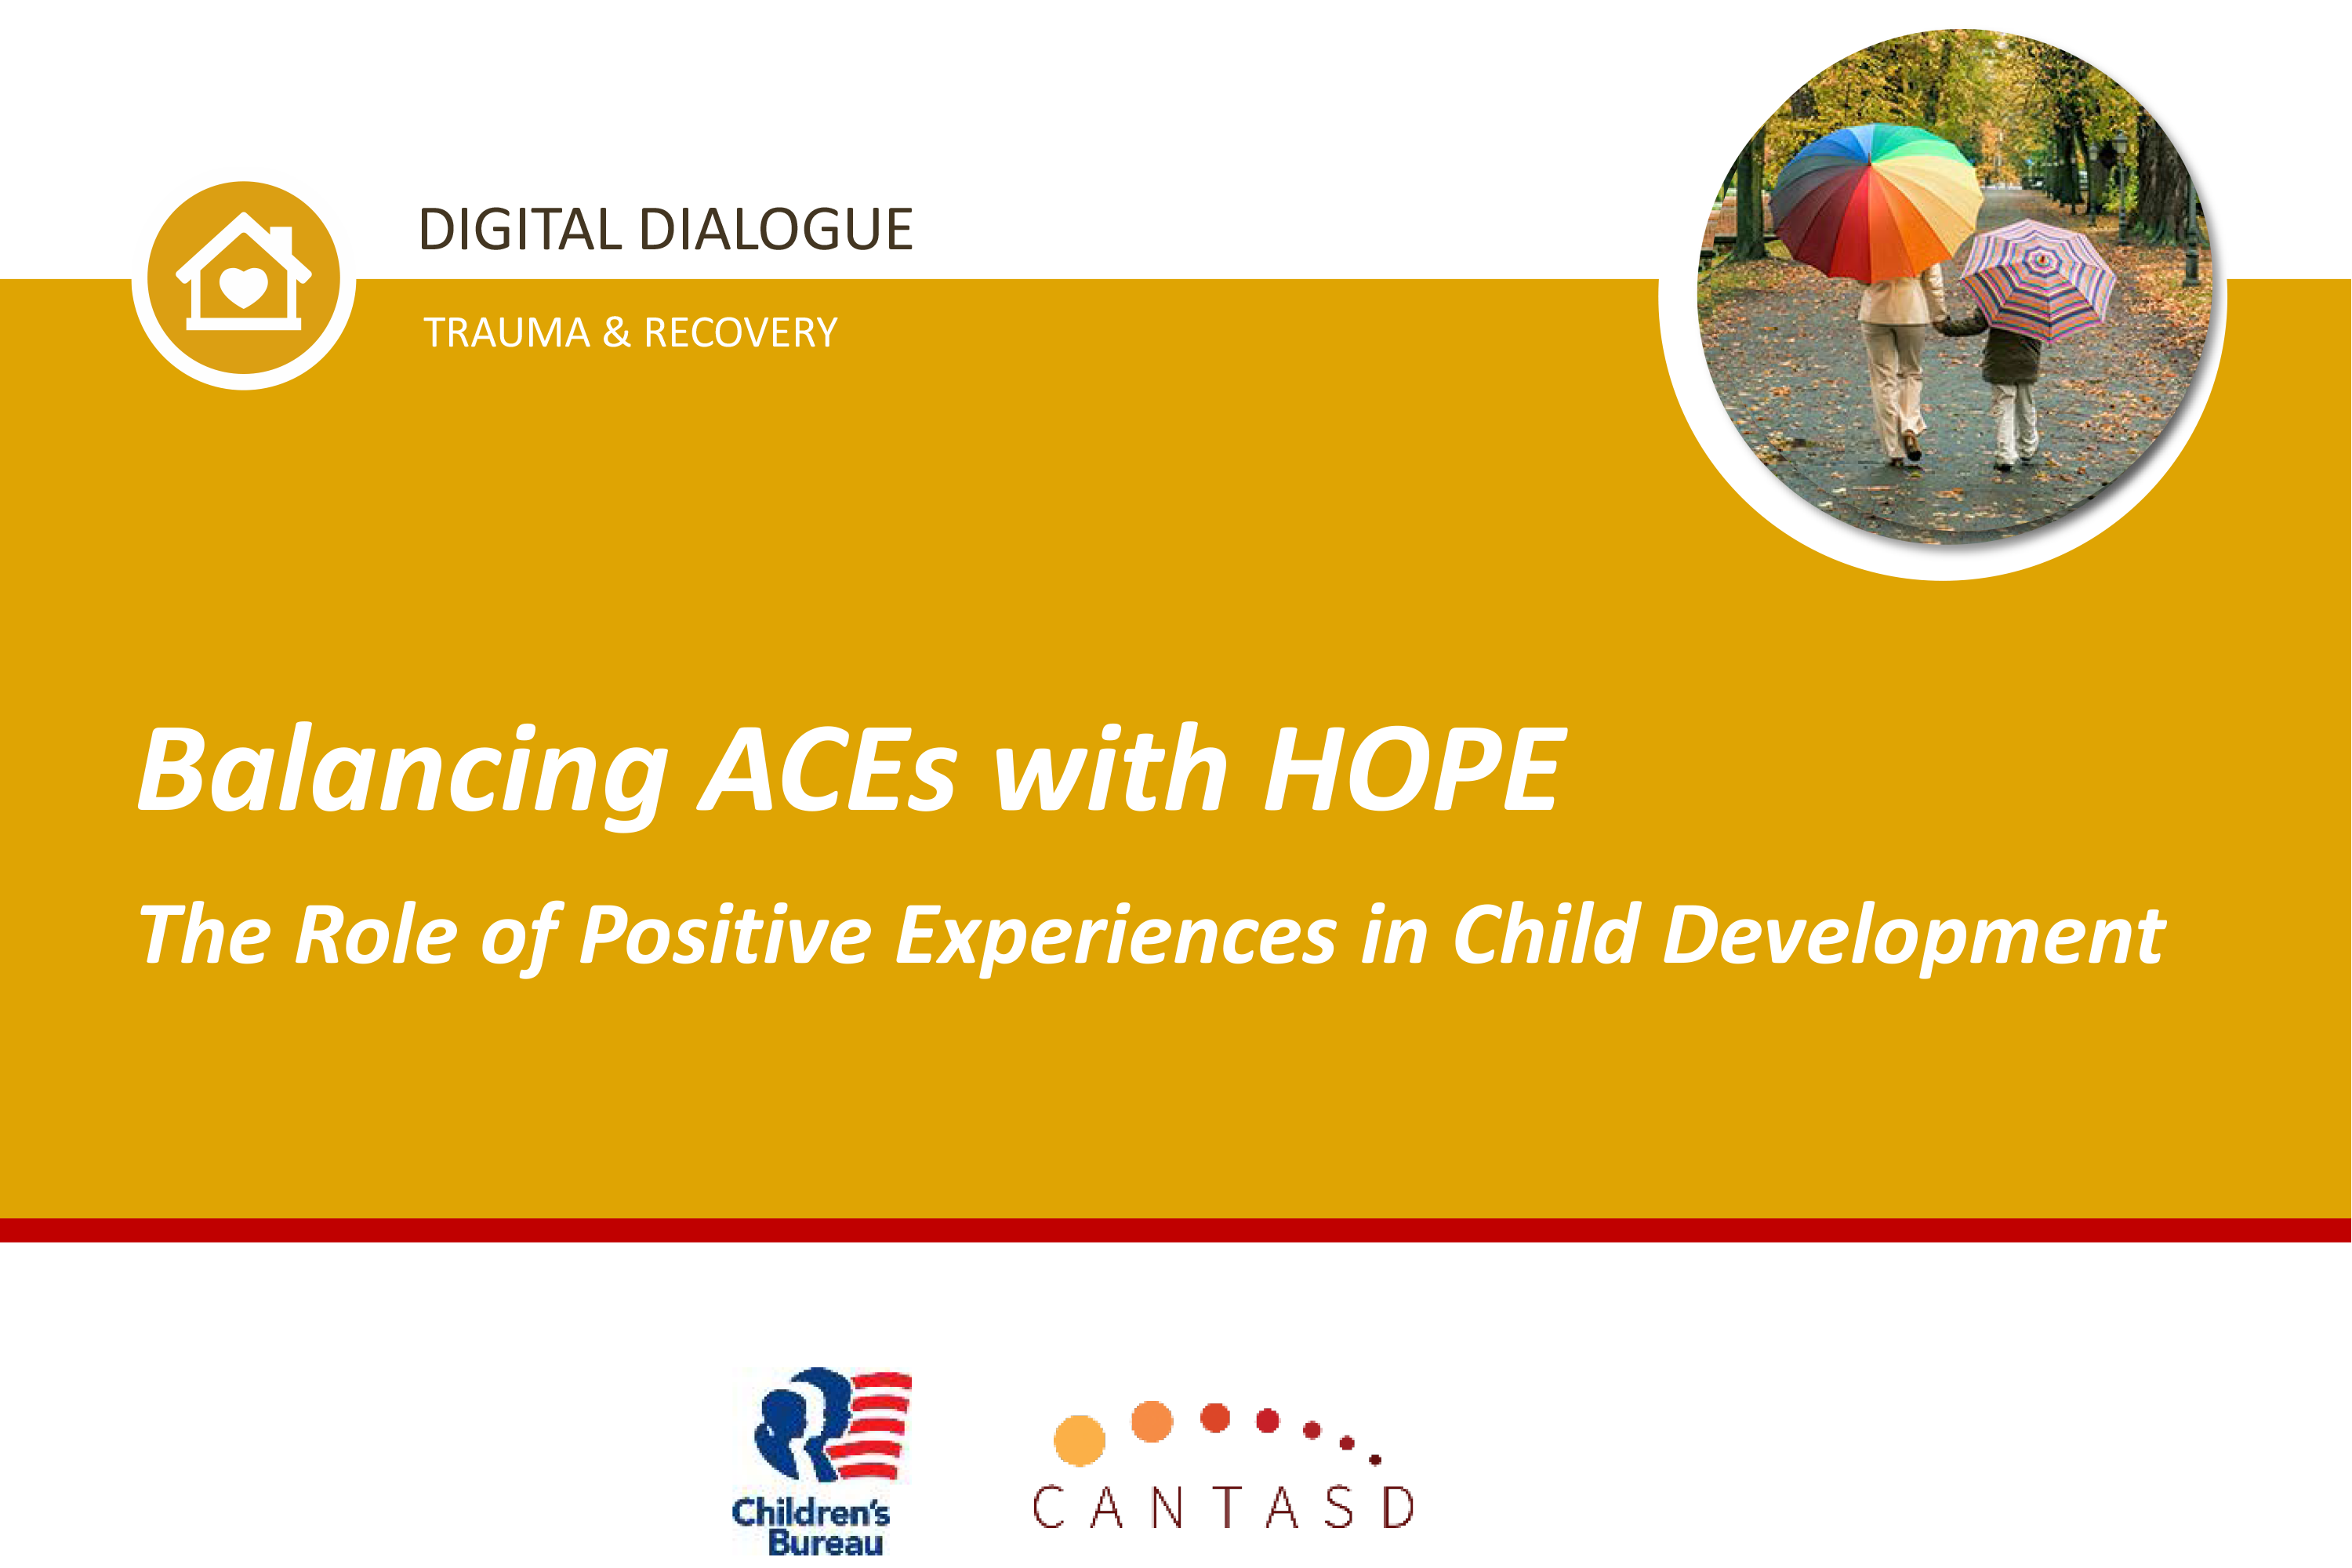 Balancing ACEs with HOPE - This link opens in a new window.